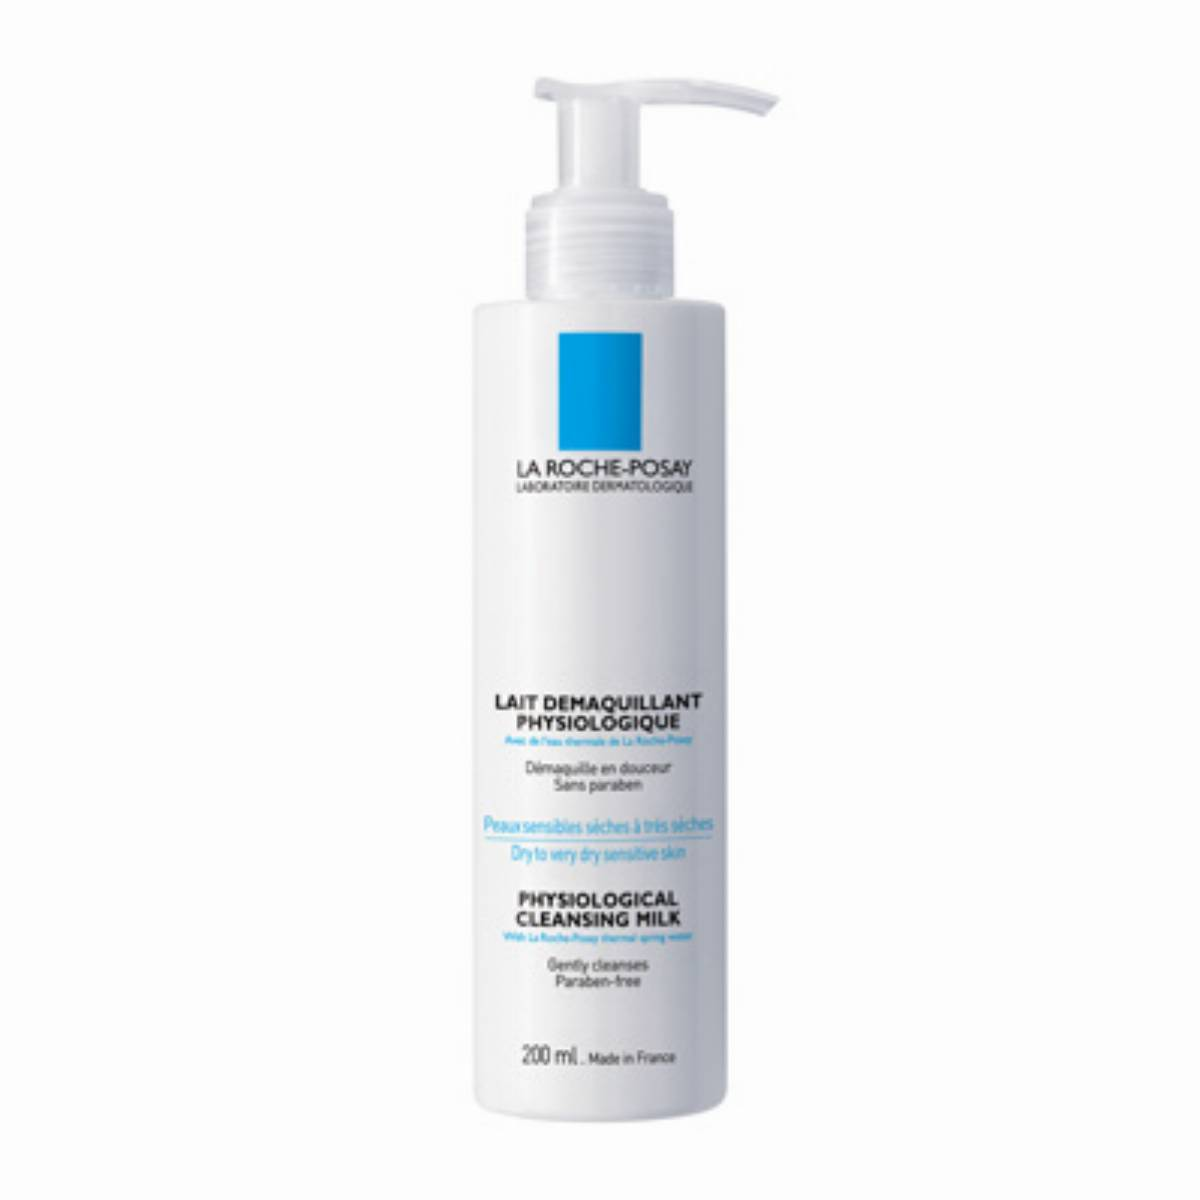 La_Roche_Posay_Physiological_Cleansing_Milk_200ml_1393404774